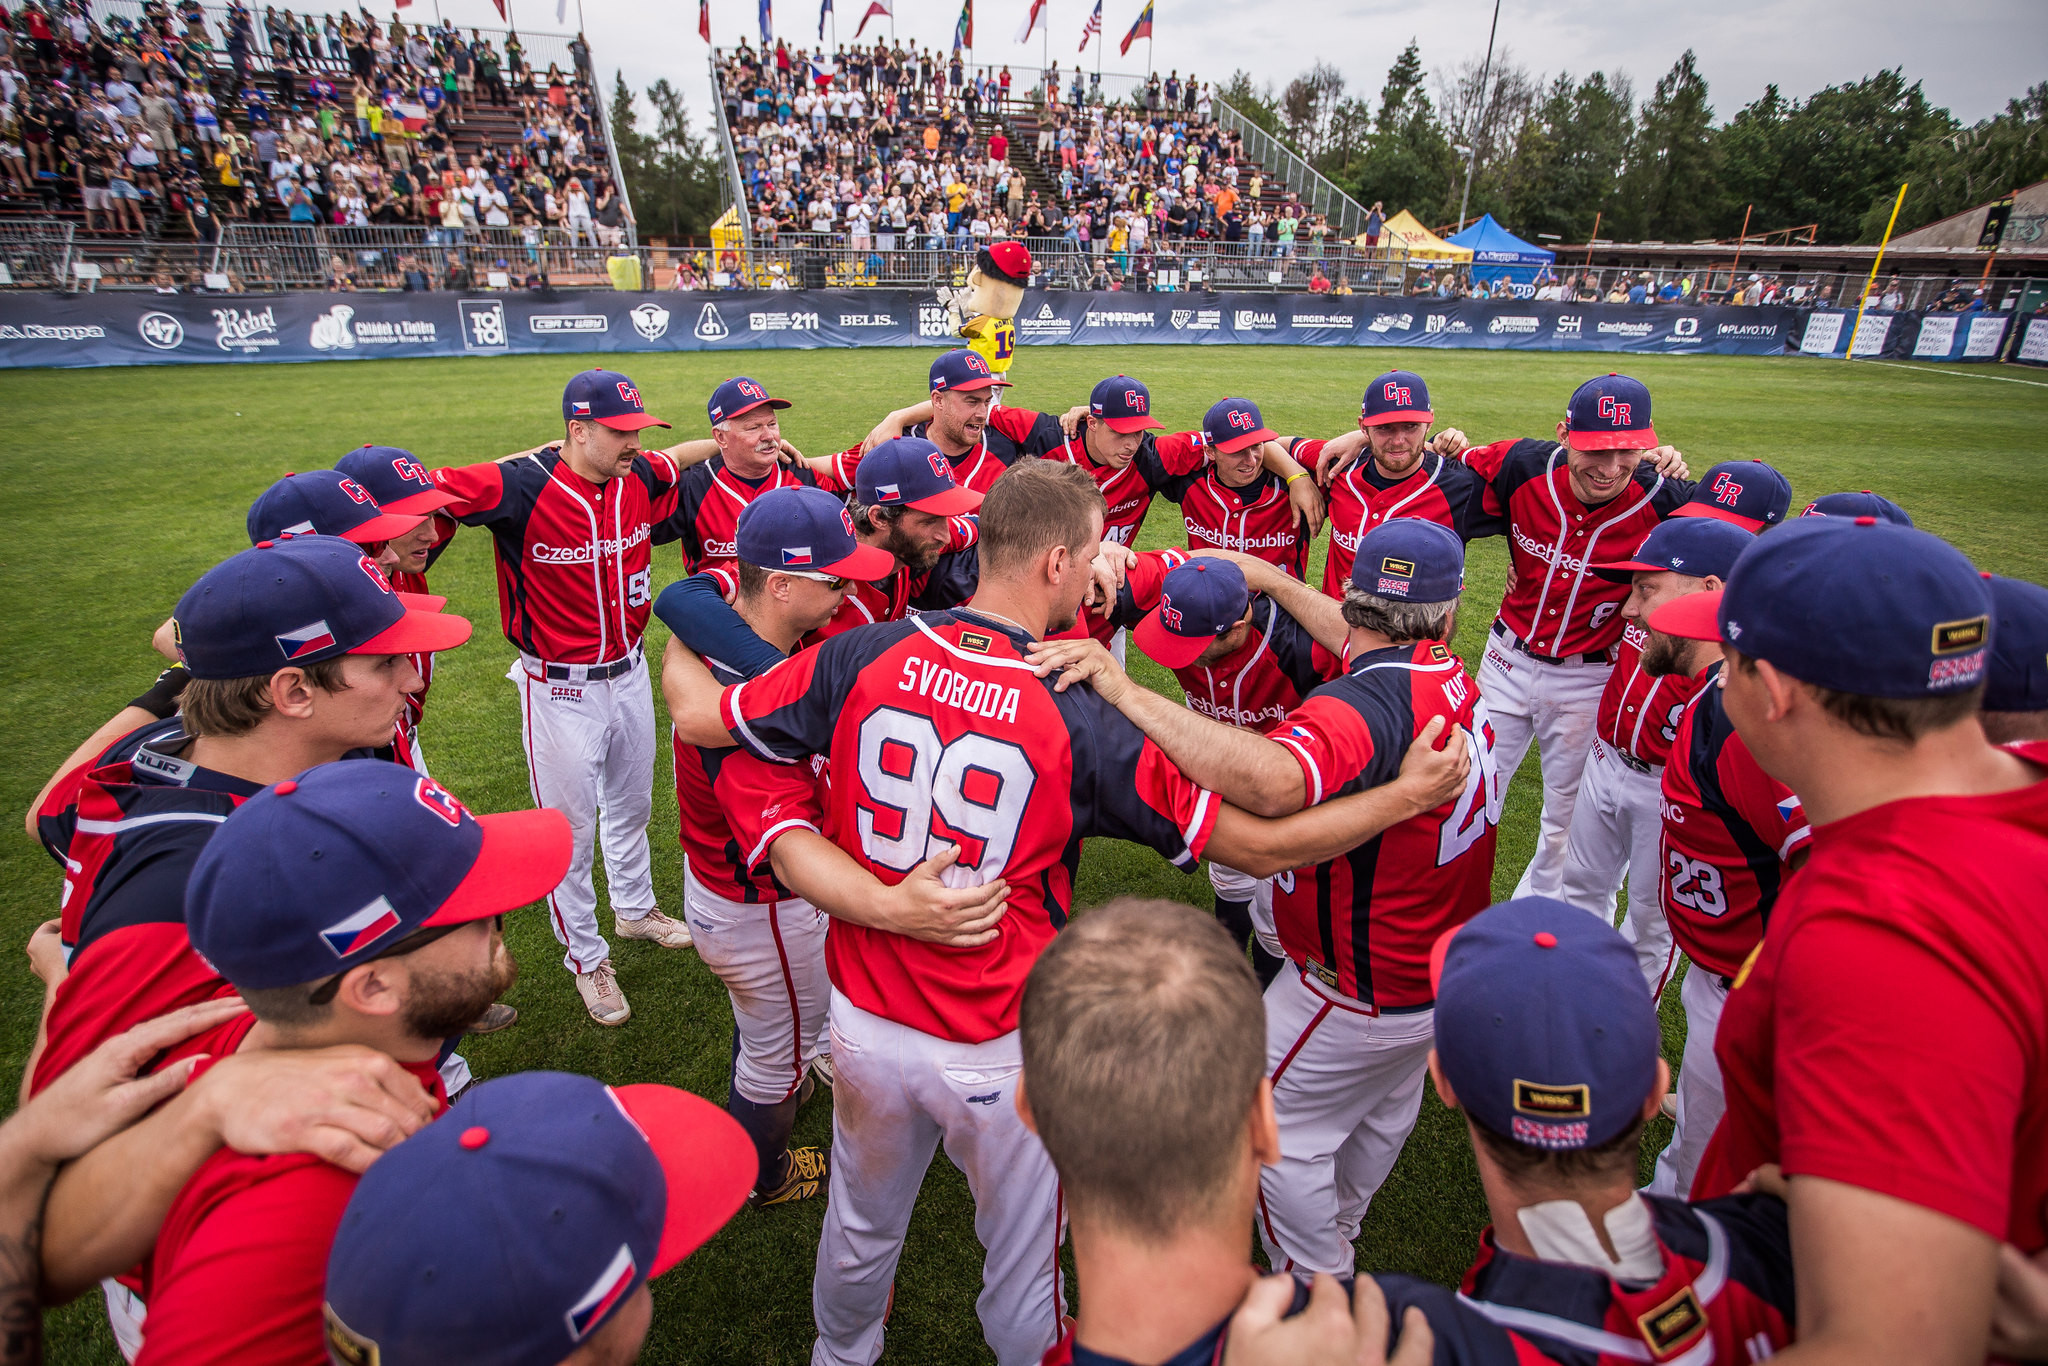 The Men's Softball World Cup will start in Auckland on February 19 2022 ©WBSC